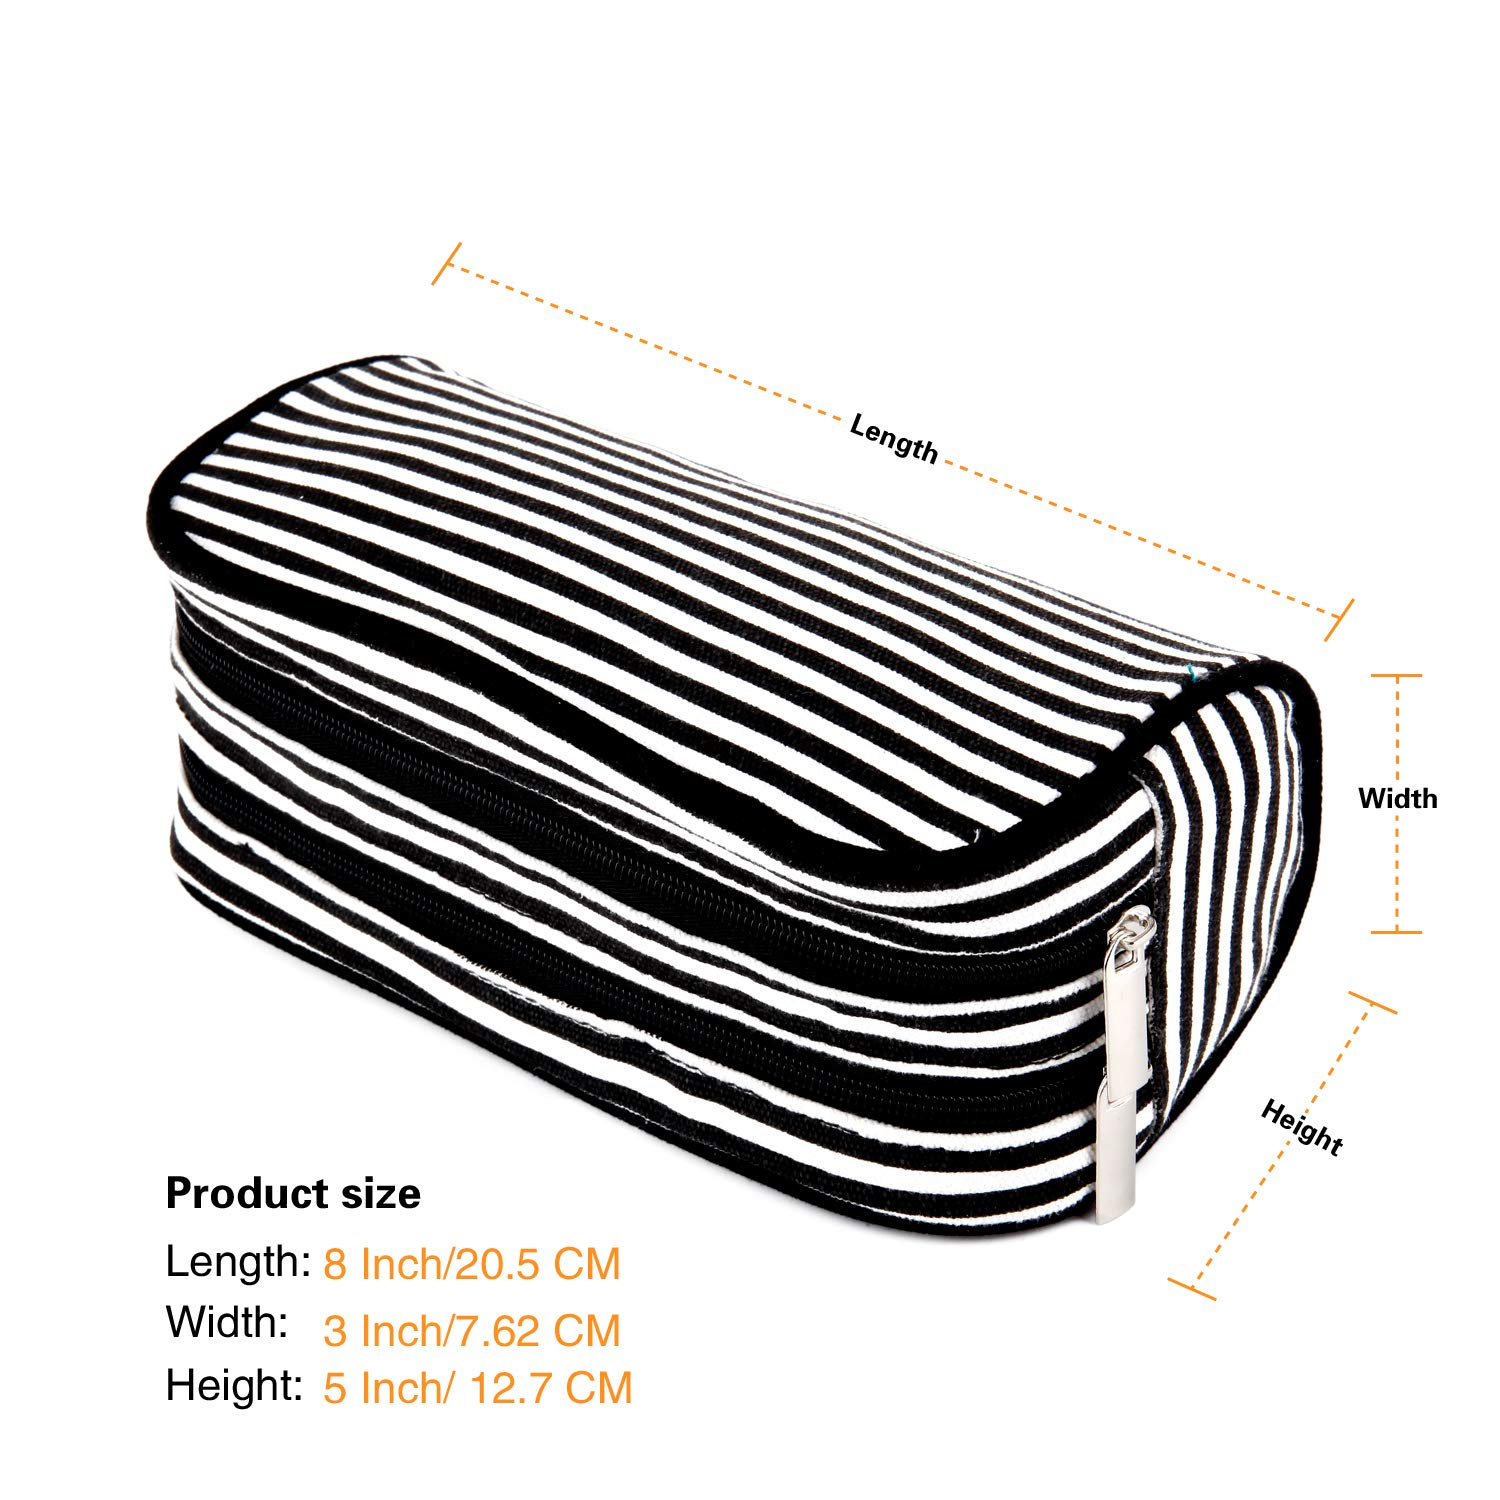 JEMIA - Black White Stripes Canvas Pencil Case with 2 Compartments Zipper Organizer Storage to Organize Office Stationary and Cosmetic Makeup Supply ...